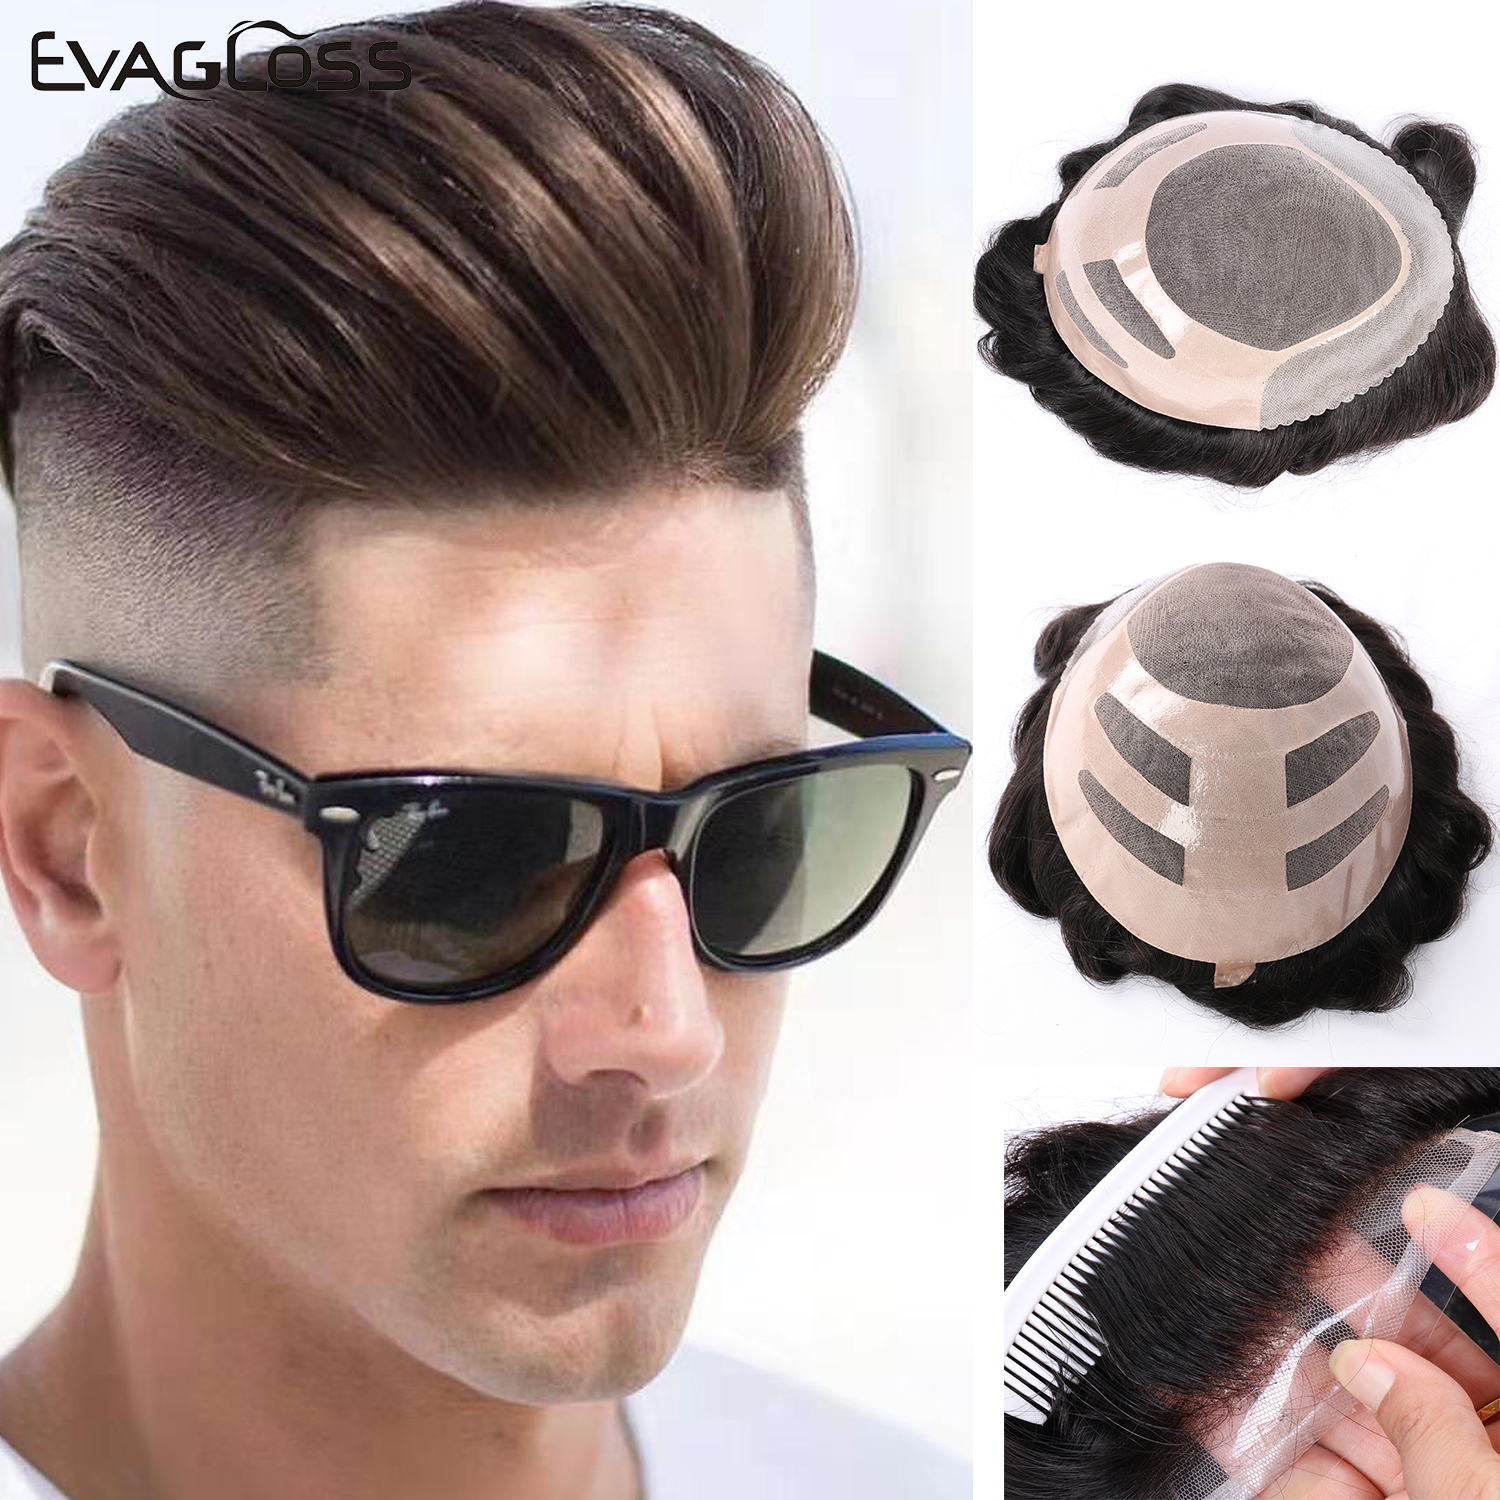 EVAGLOSS Natural Human Hair Mens Toupee Size 8*10 French Lace Front Hair Replacement System Fine Mono Hairpieces Wigs For Men